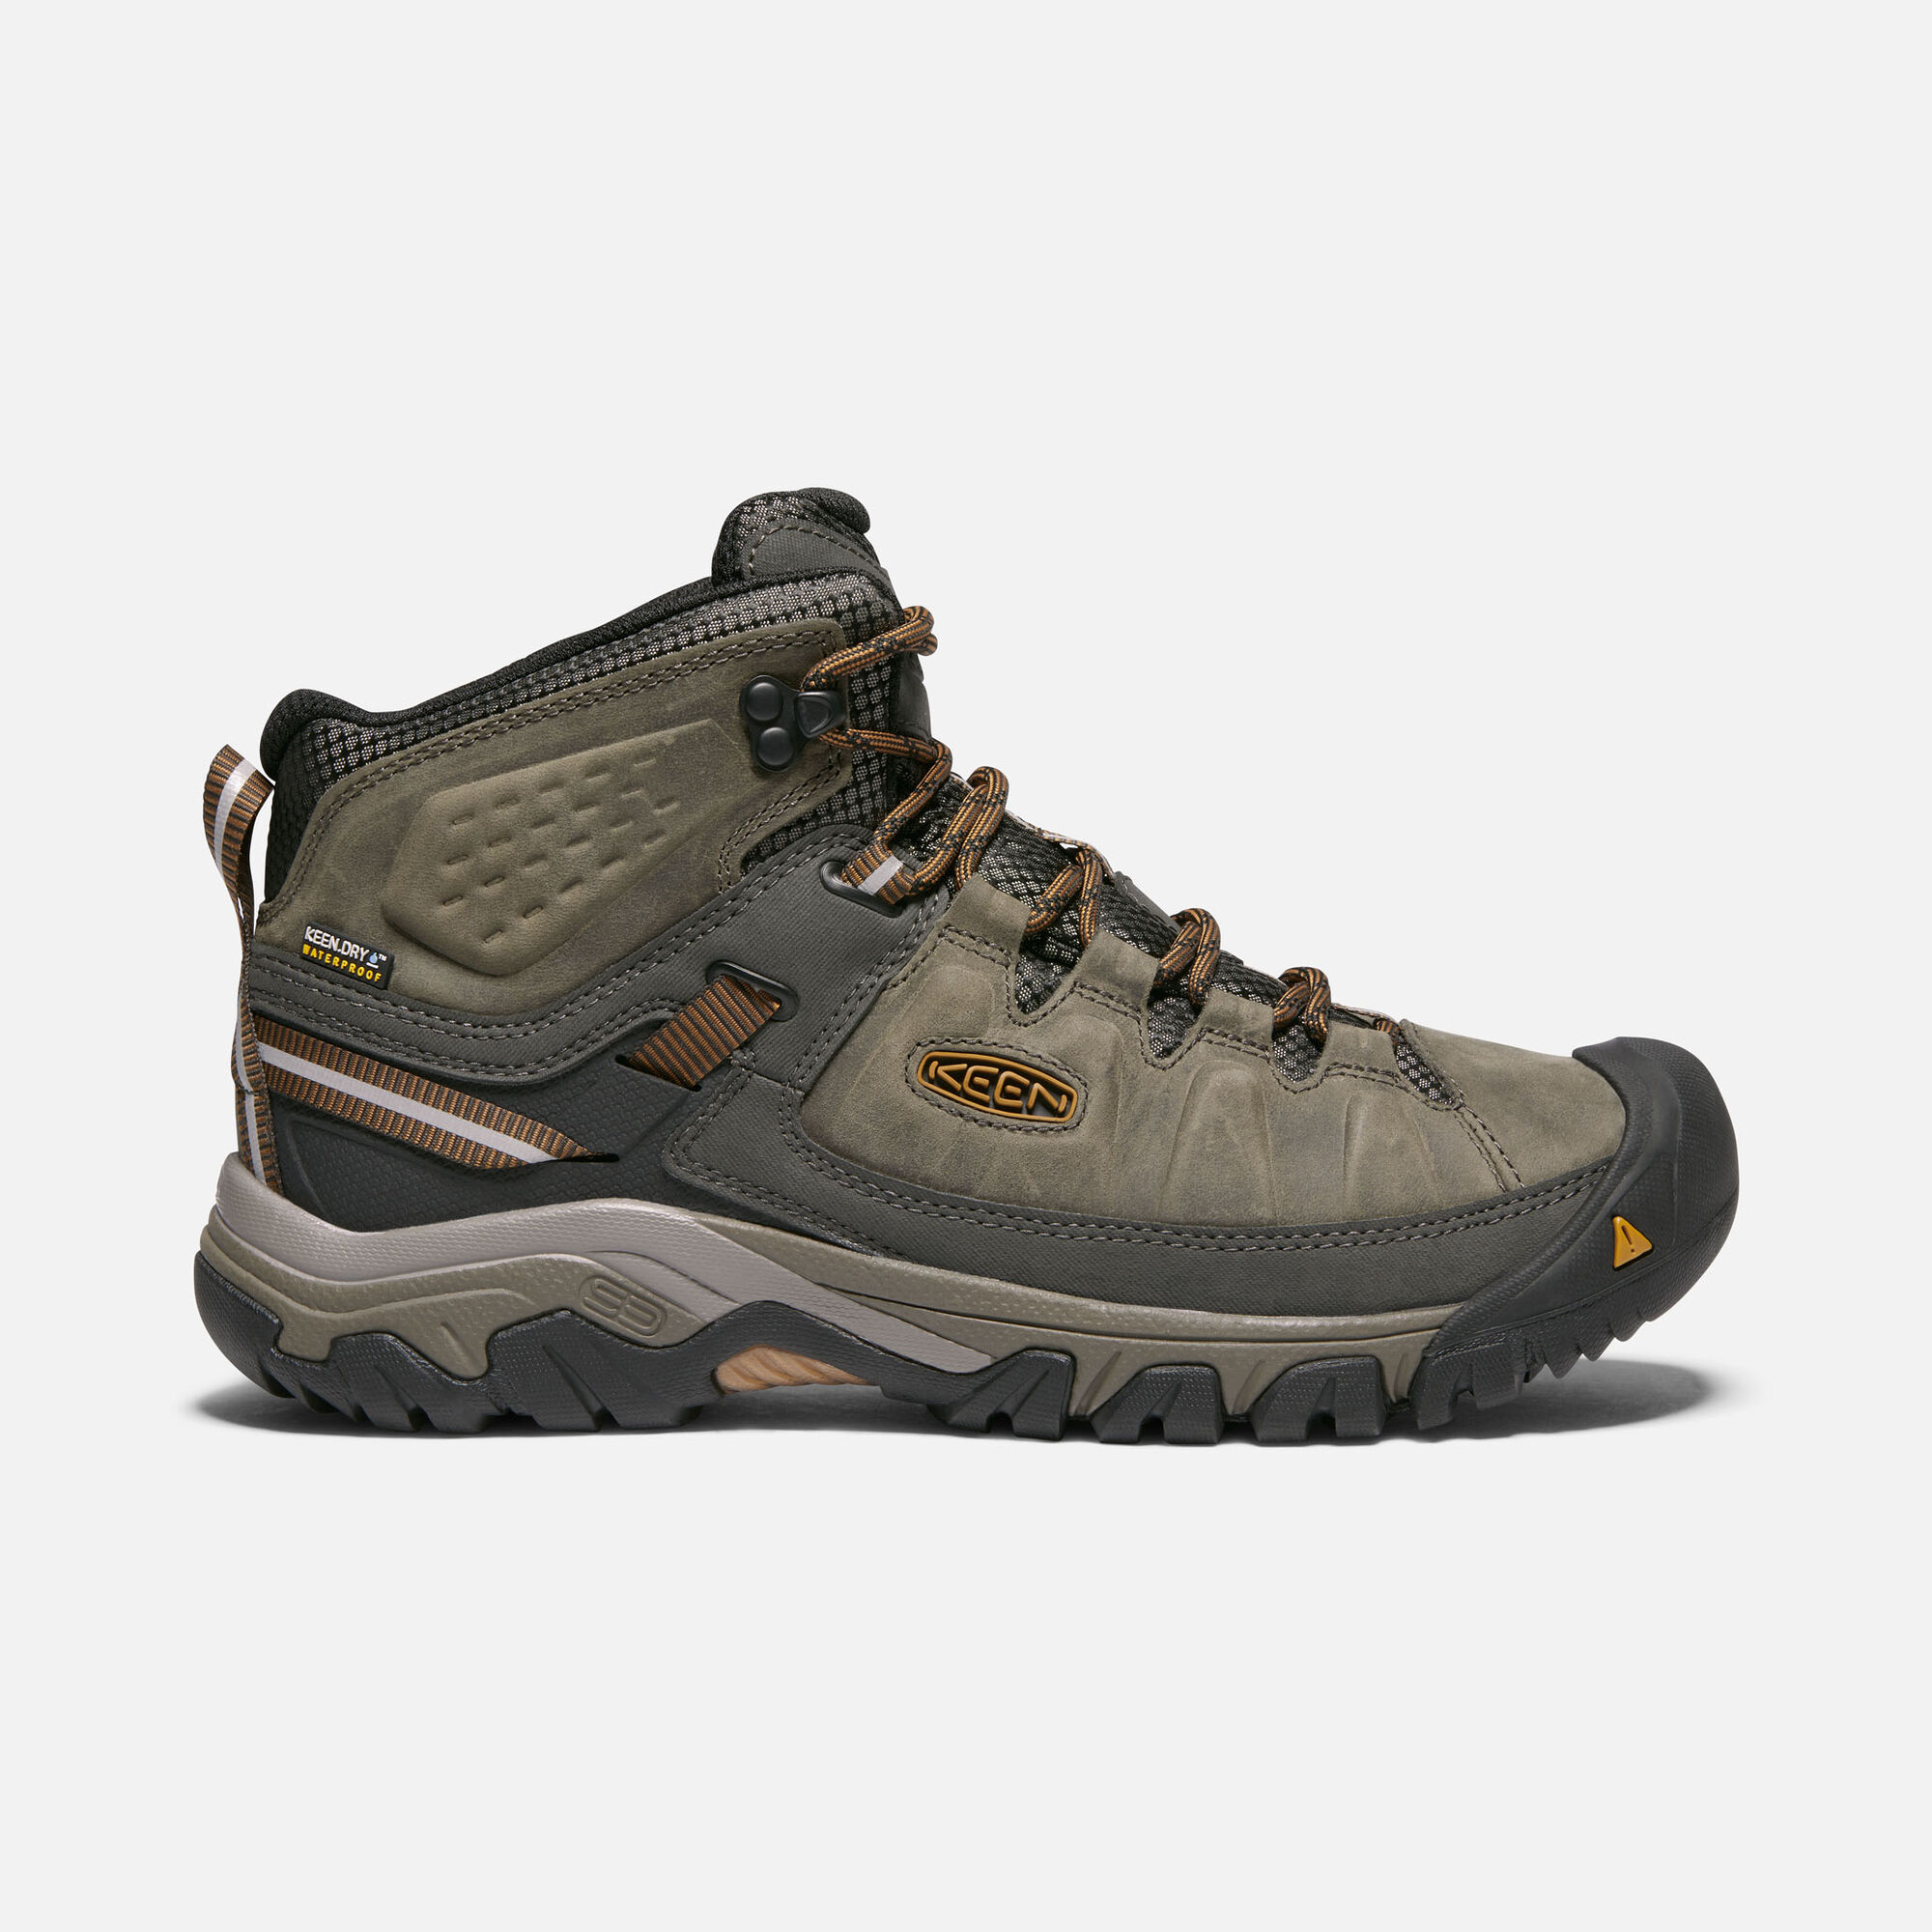 shoes running s tennis women womens hiking boots c nordstrom comfortable most sneakers comforter activity athletic